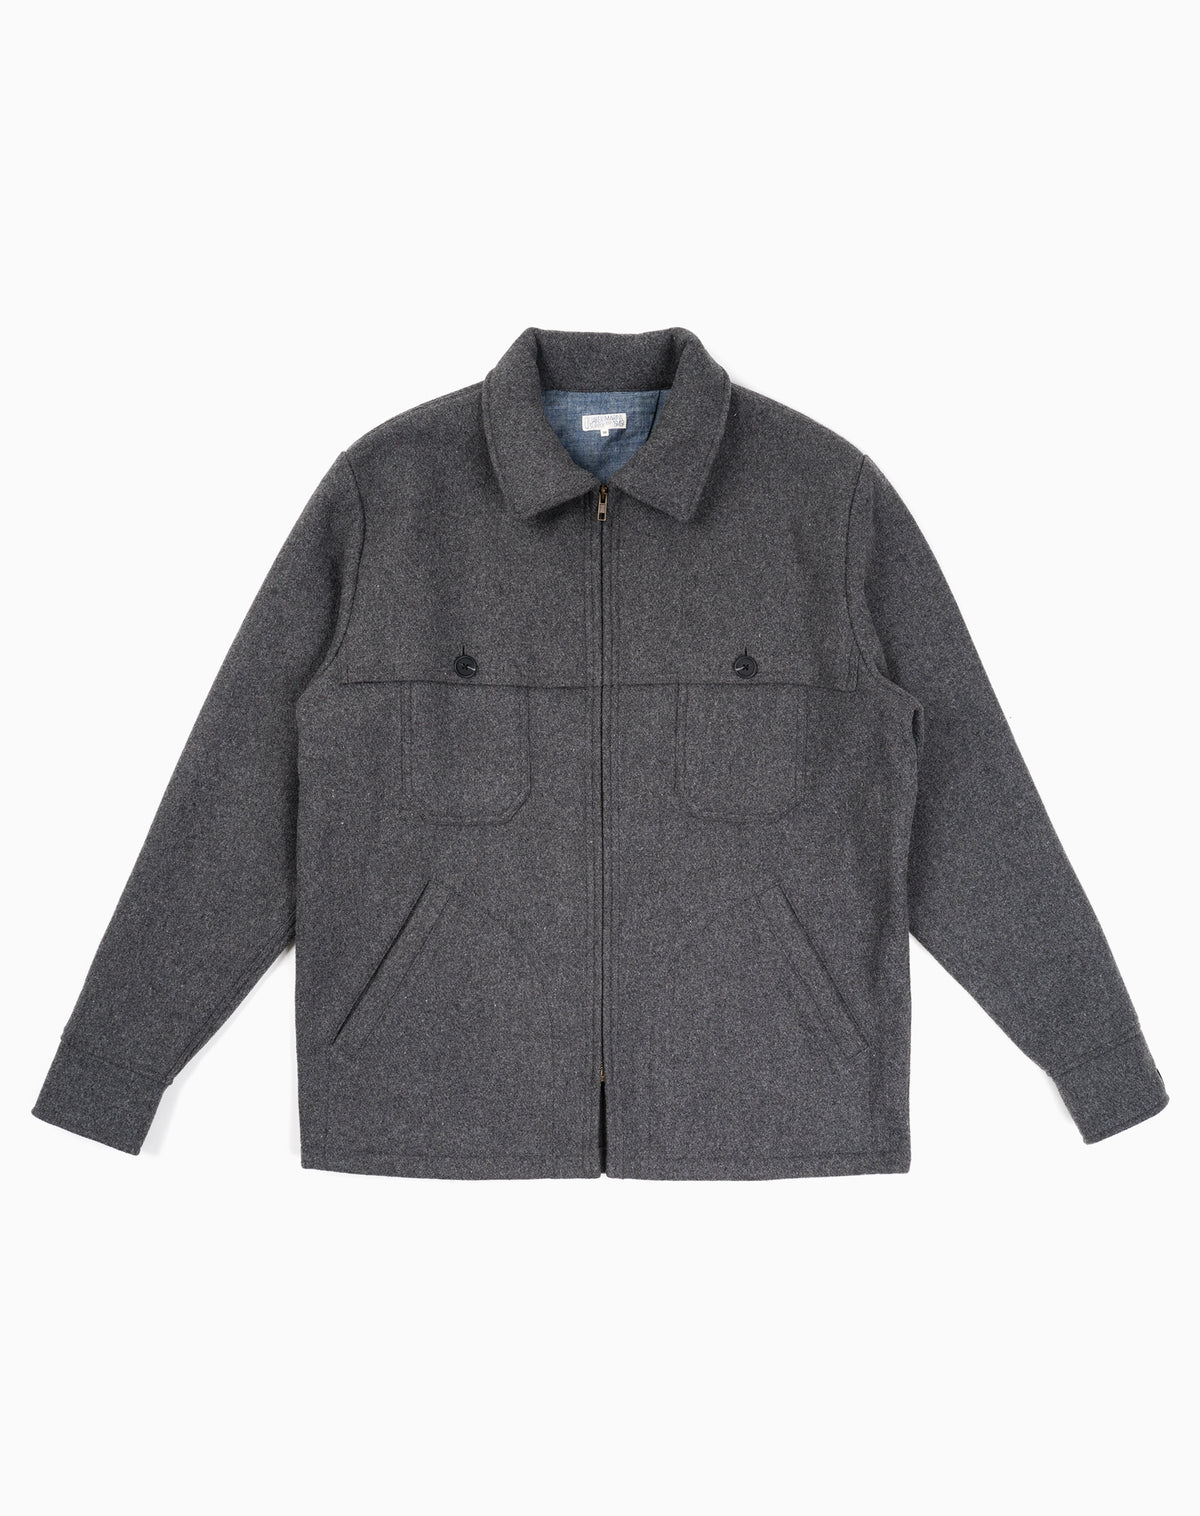 Hudson Jacket in Grey